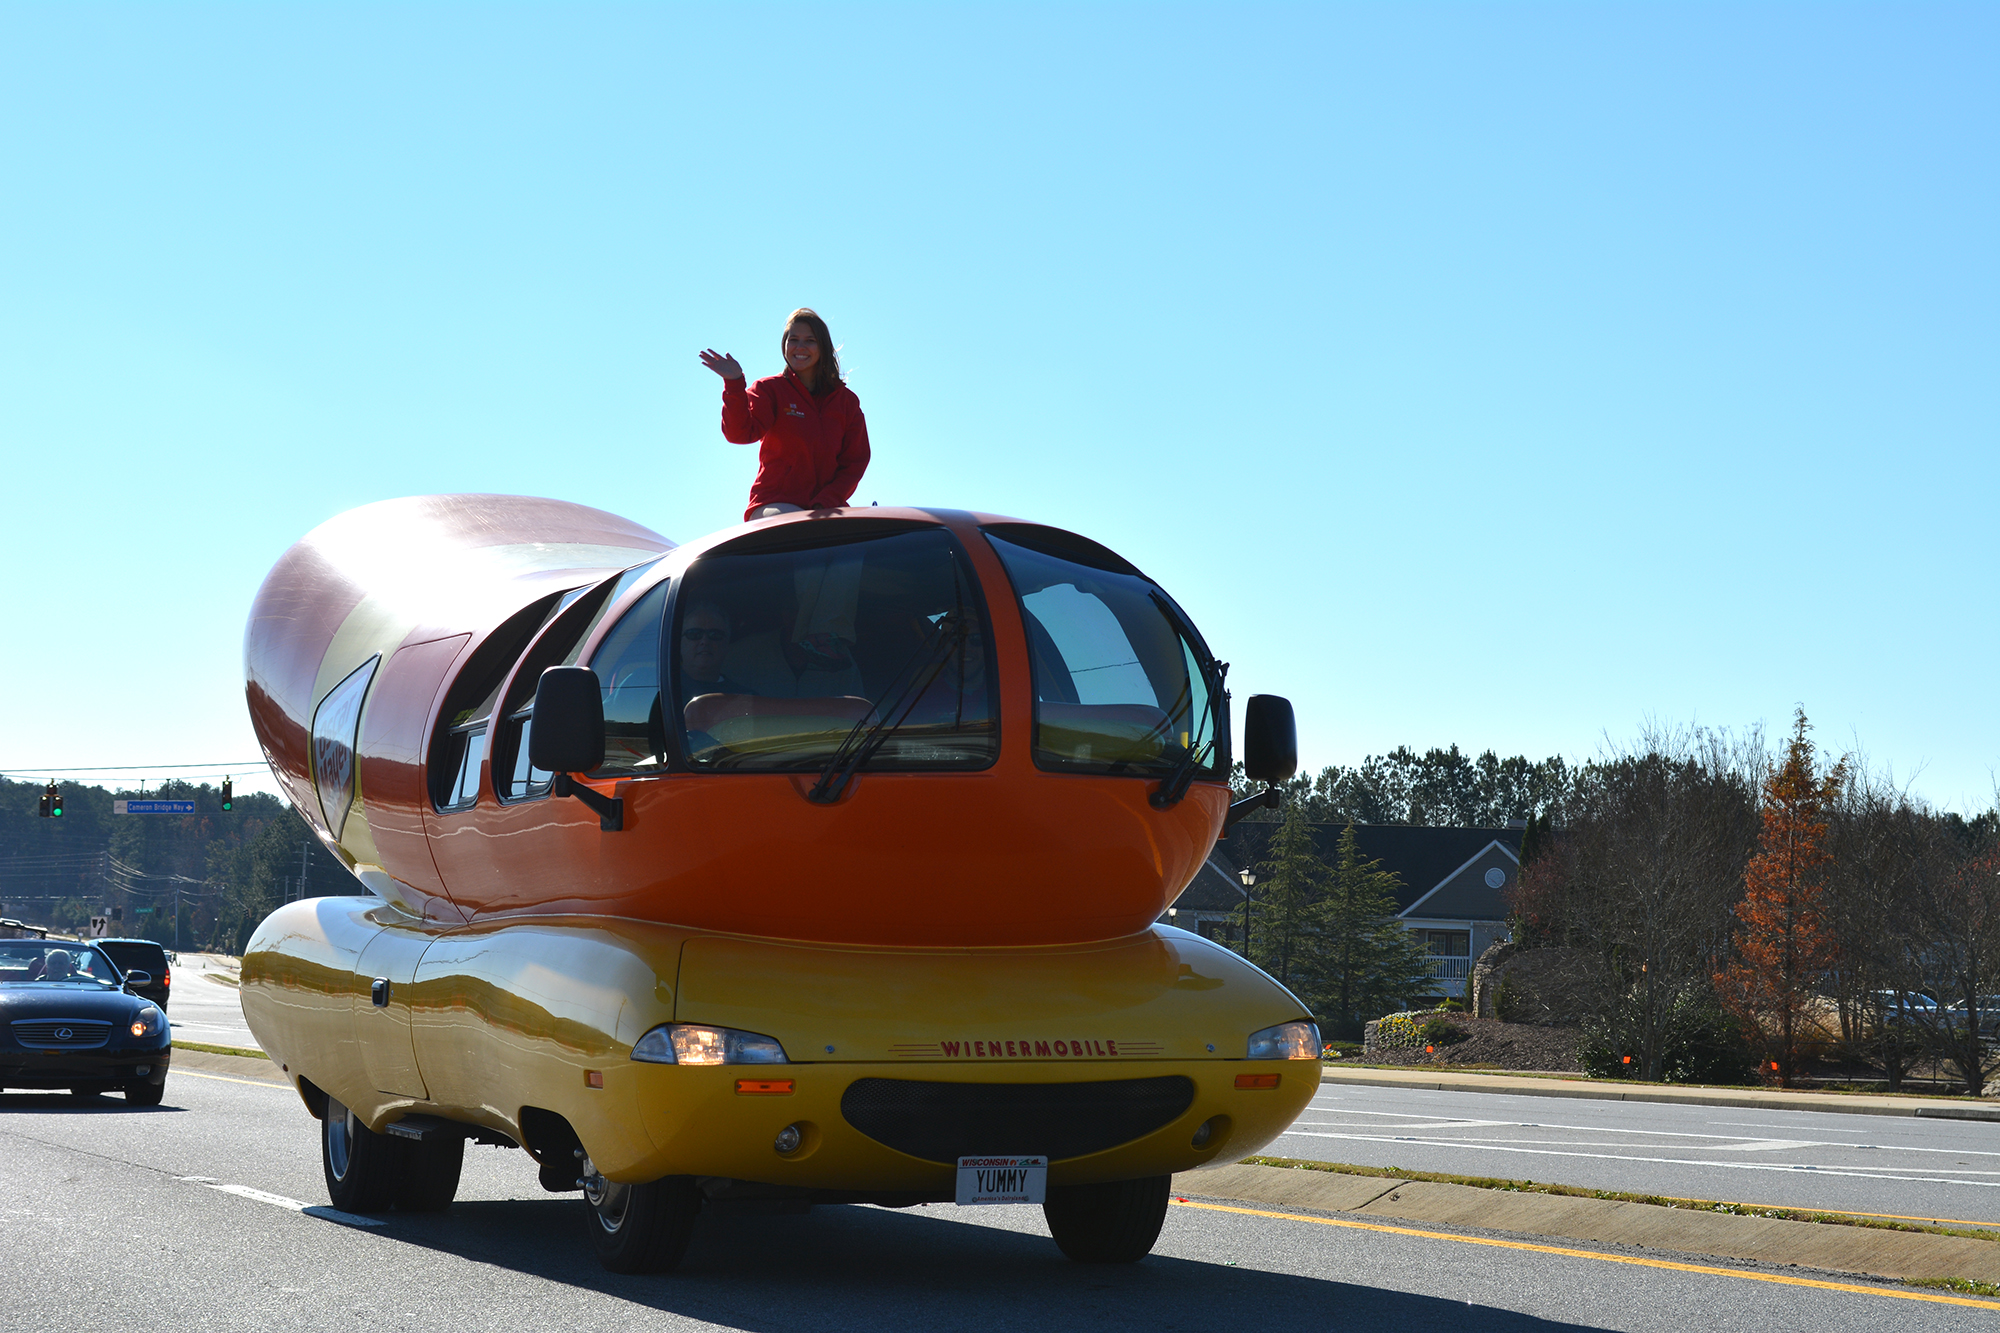 Wienermobile joins the Founders Day Parade lineup